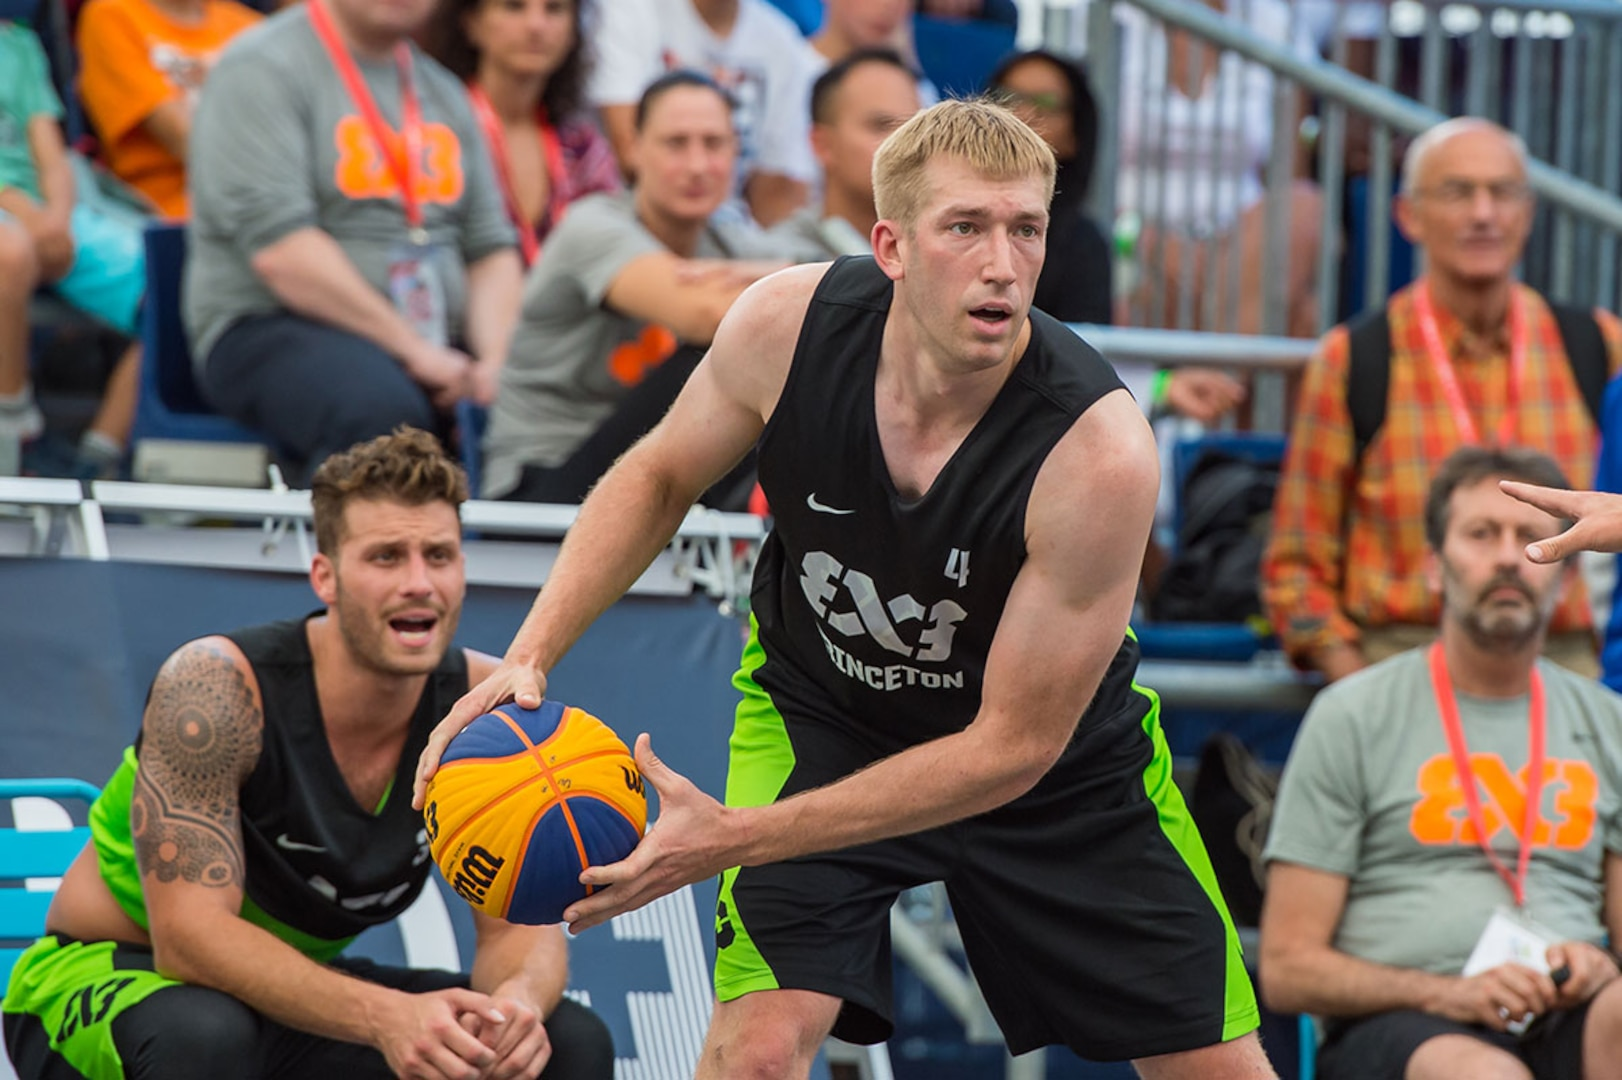 Robbie Hummel holds the basketball during a game of 3x3